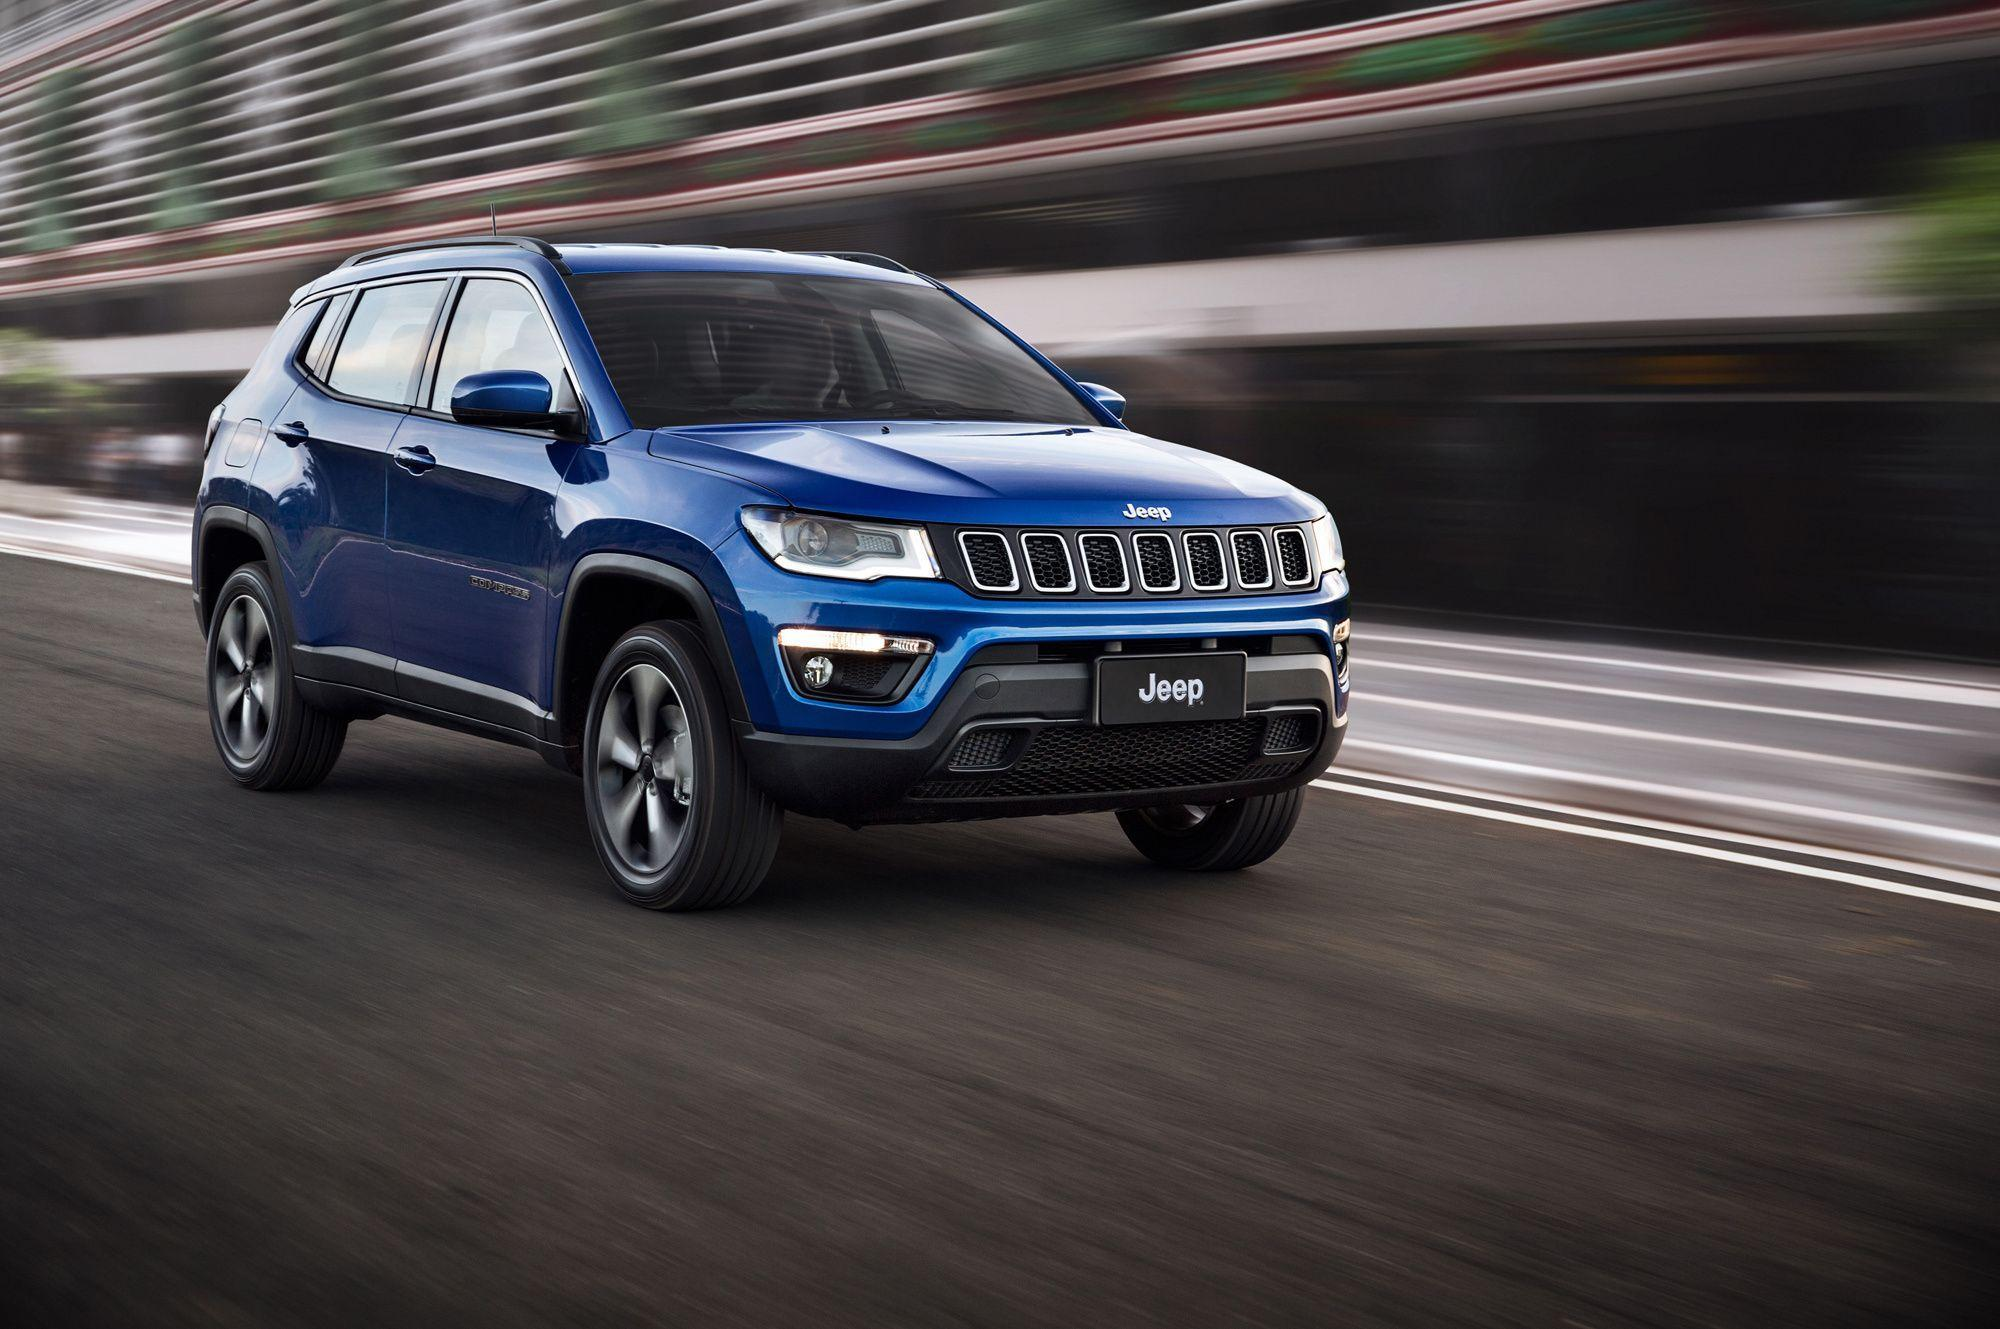 Jeep Compass Wallpapers Image Photos Pictures Backgrounds